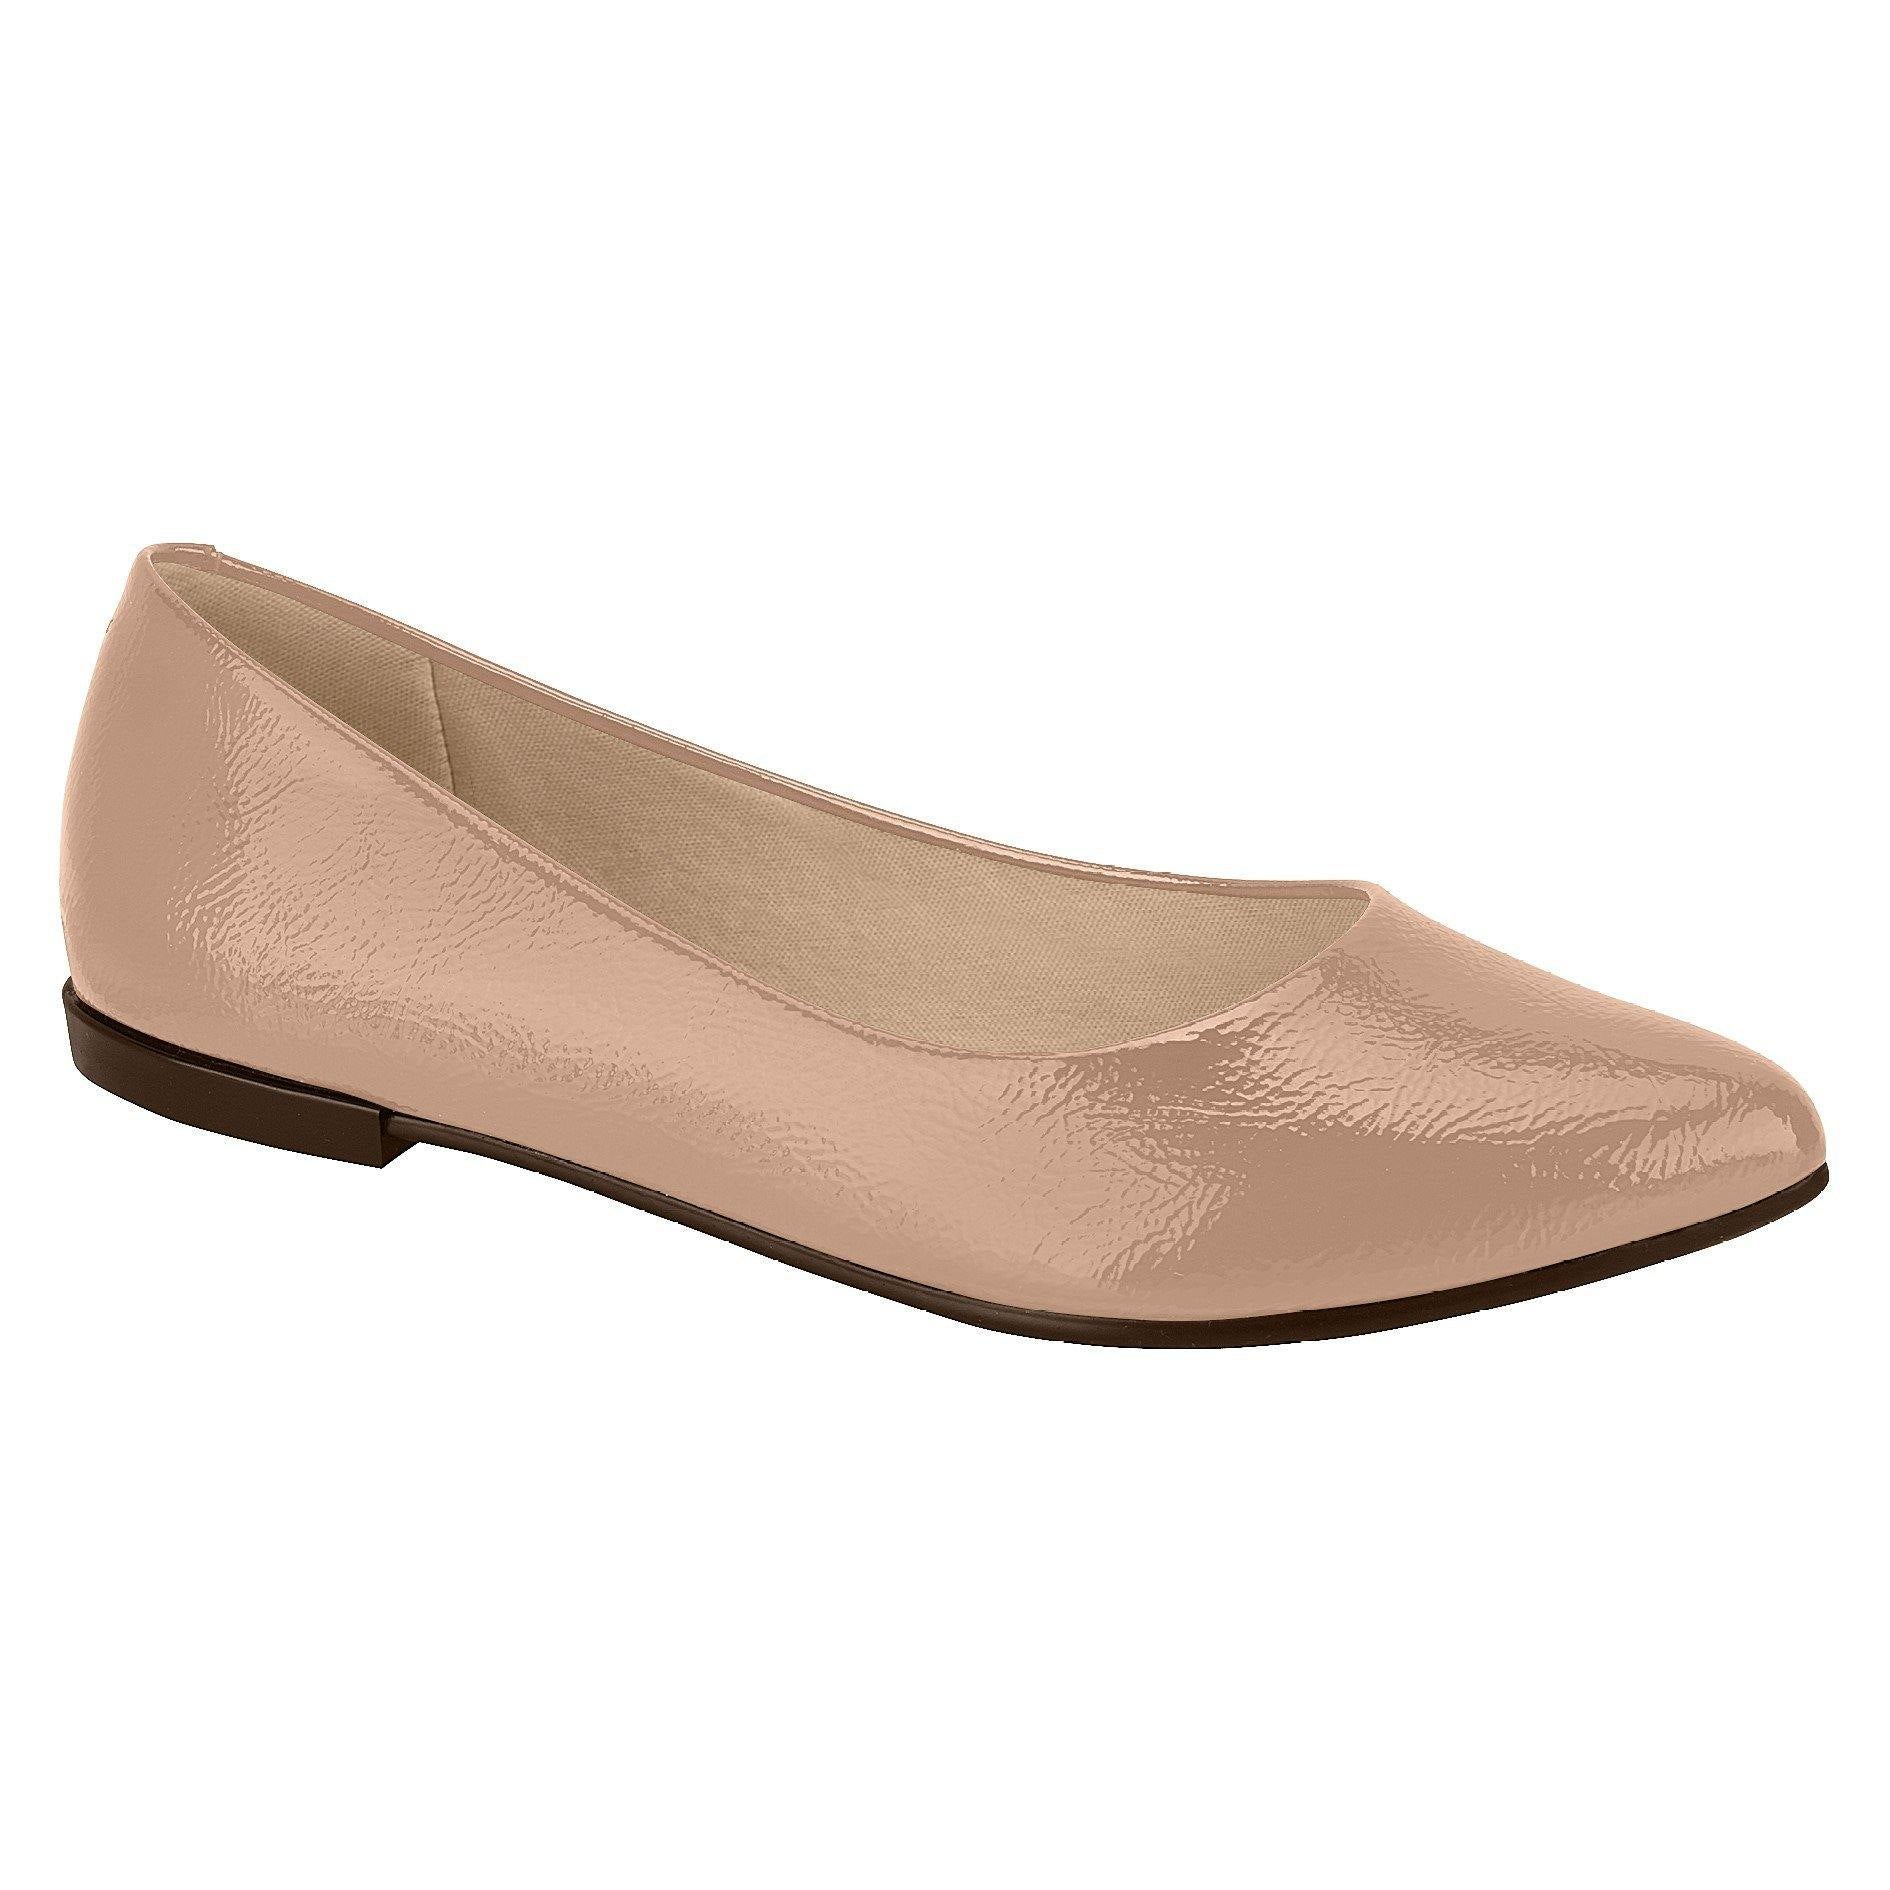 Moleca 5301-309 Pointy Toe Flat in Nude Patent